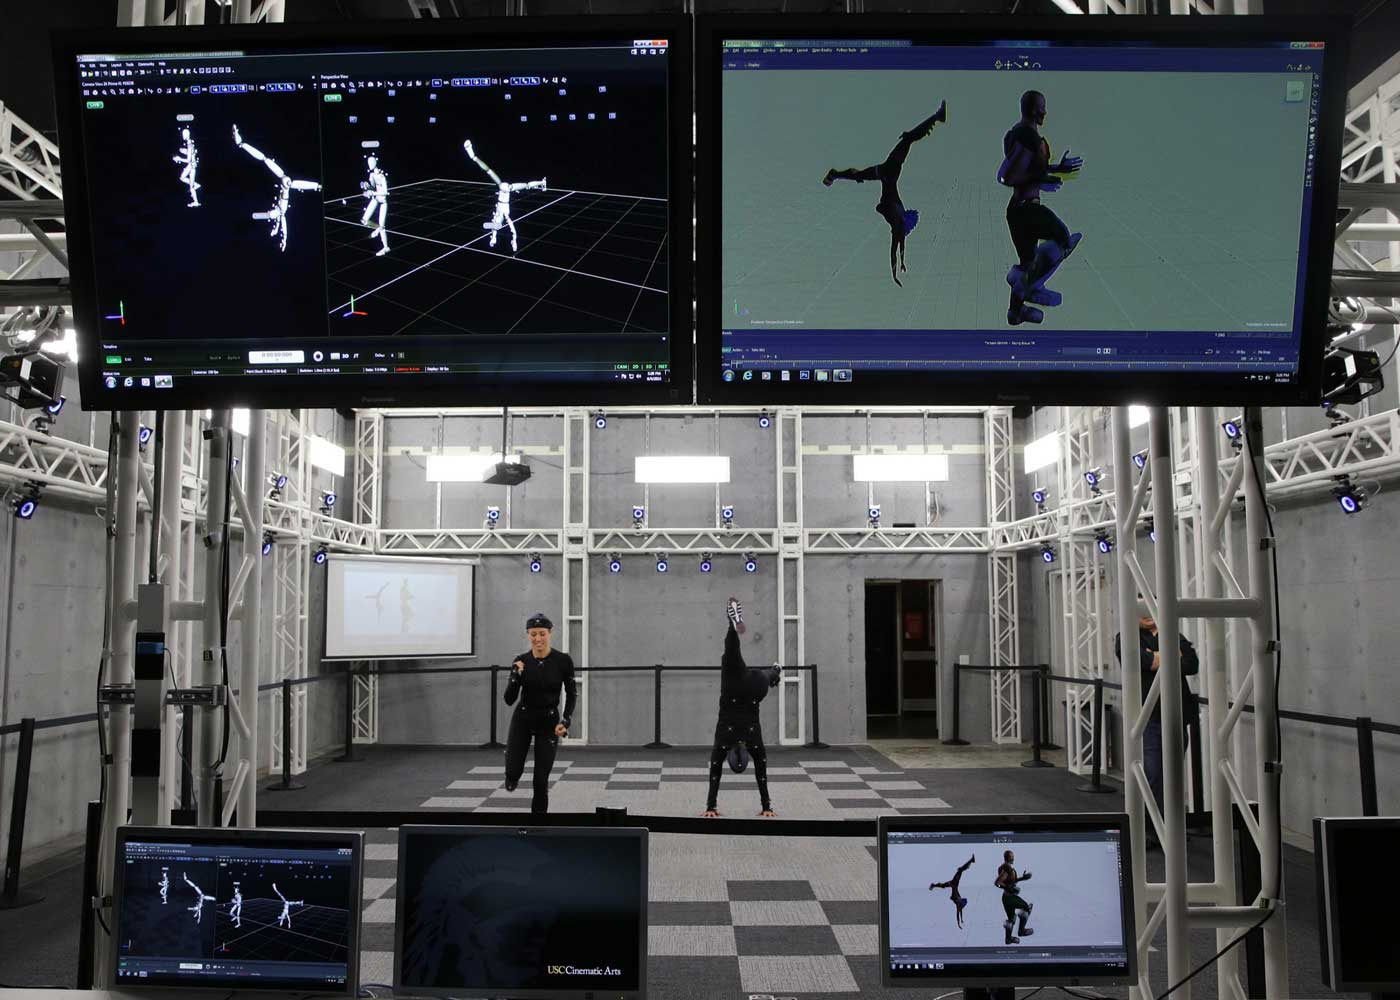 USC School of Cinematic Arts using OptiTrack Motion Capture